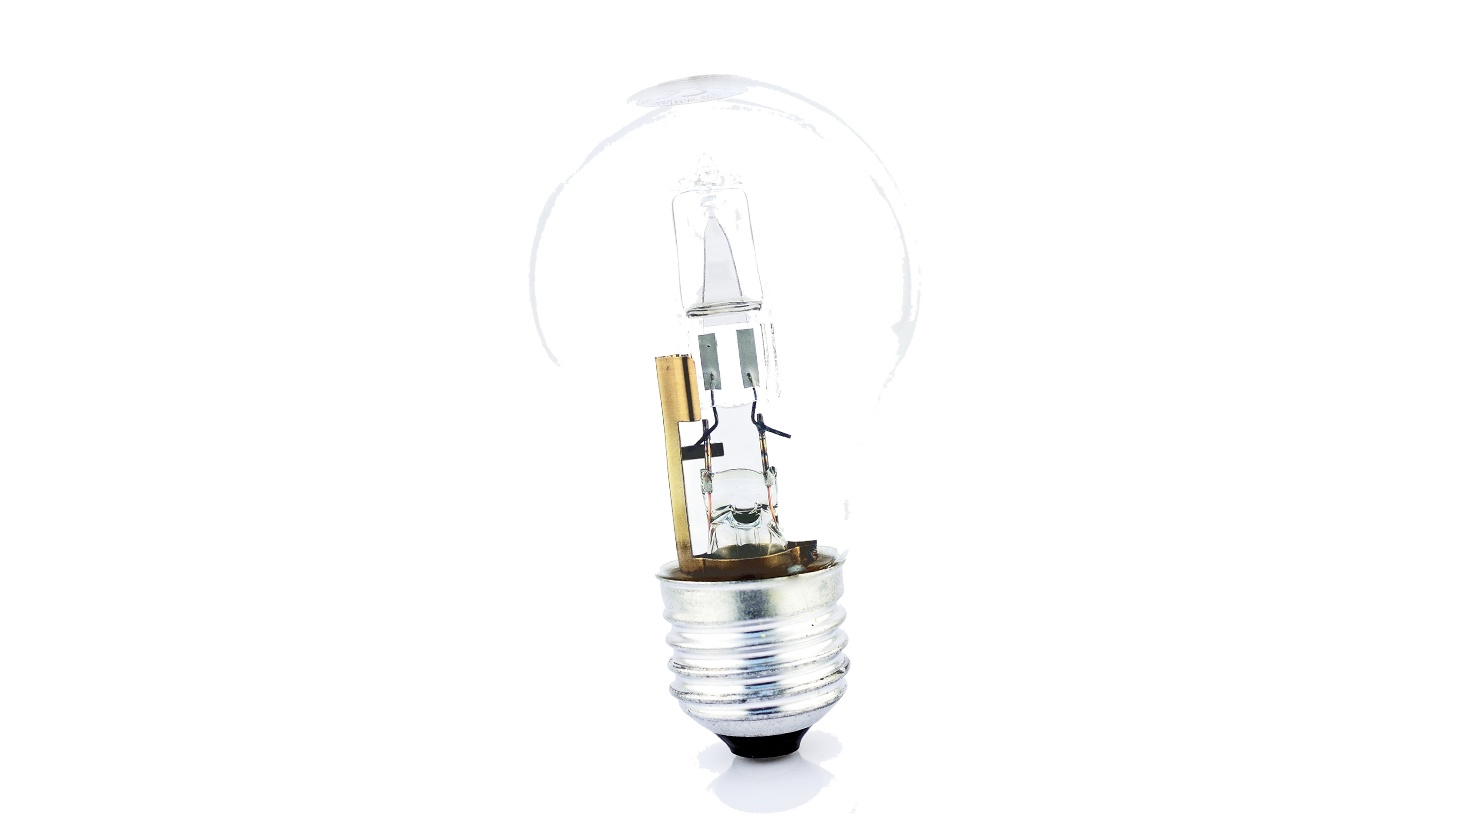 What is halogen and how is it different than incandescent? for Tungsten Halogen Lamps  45jwn